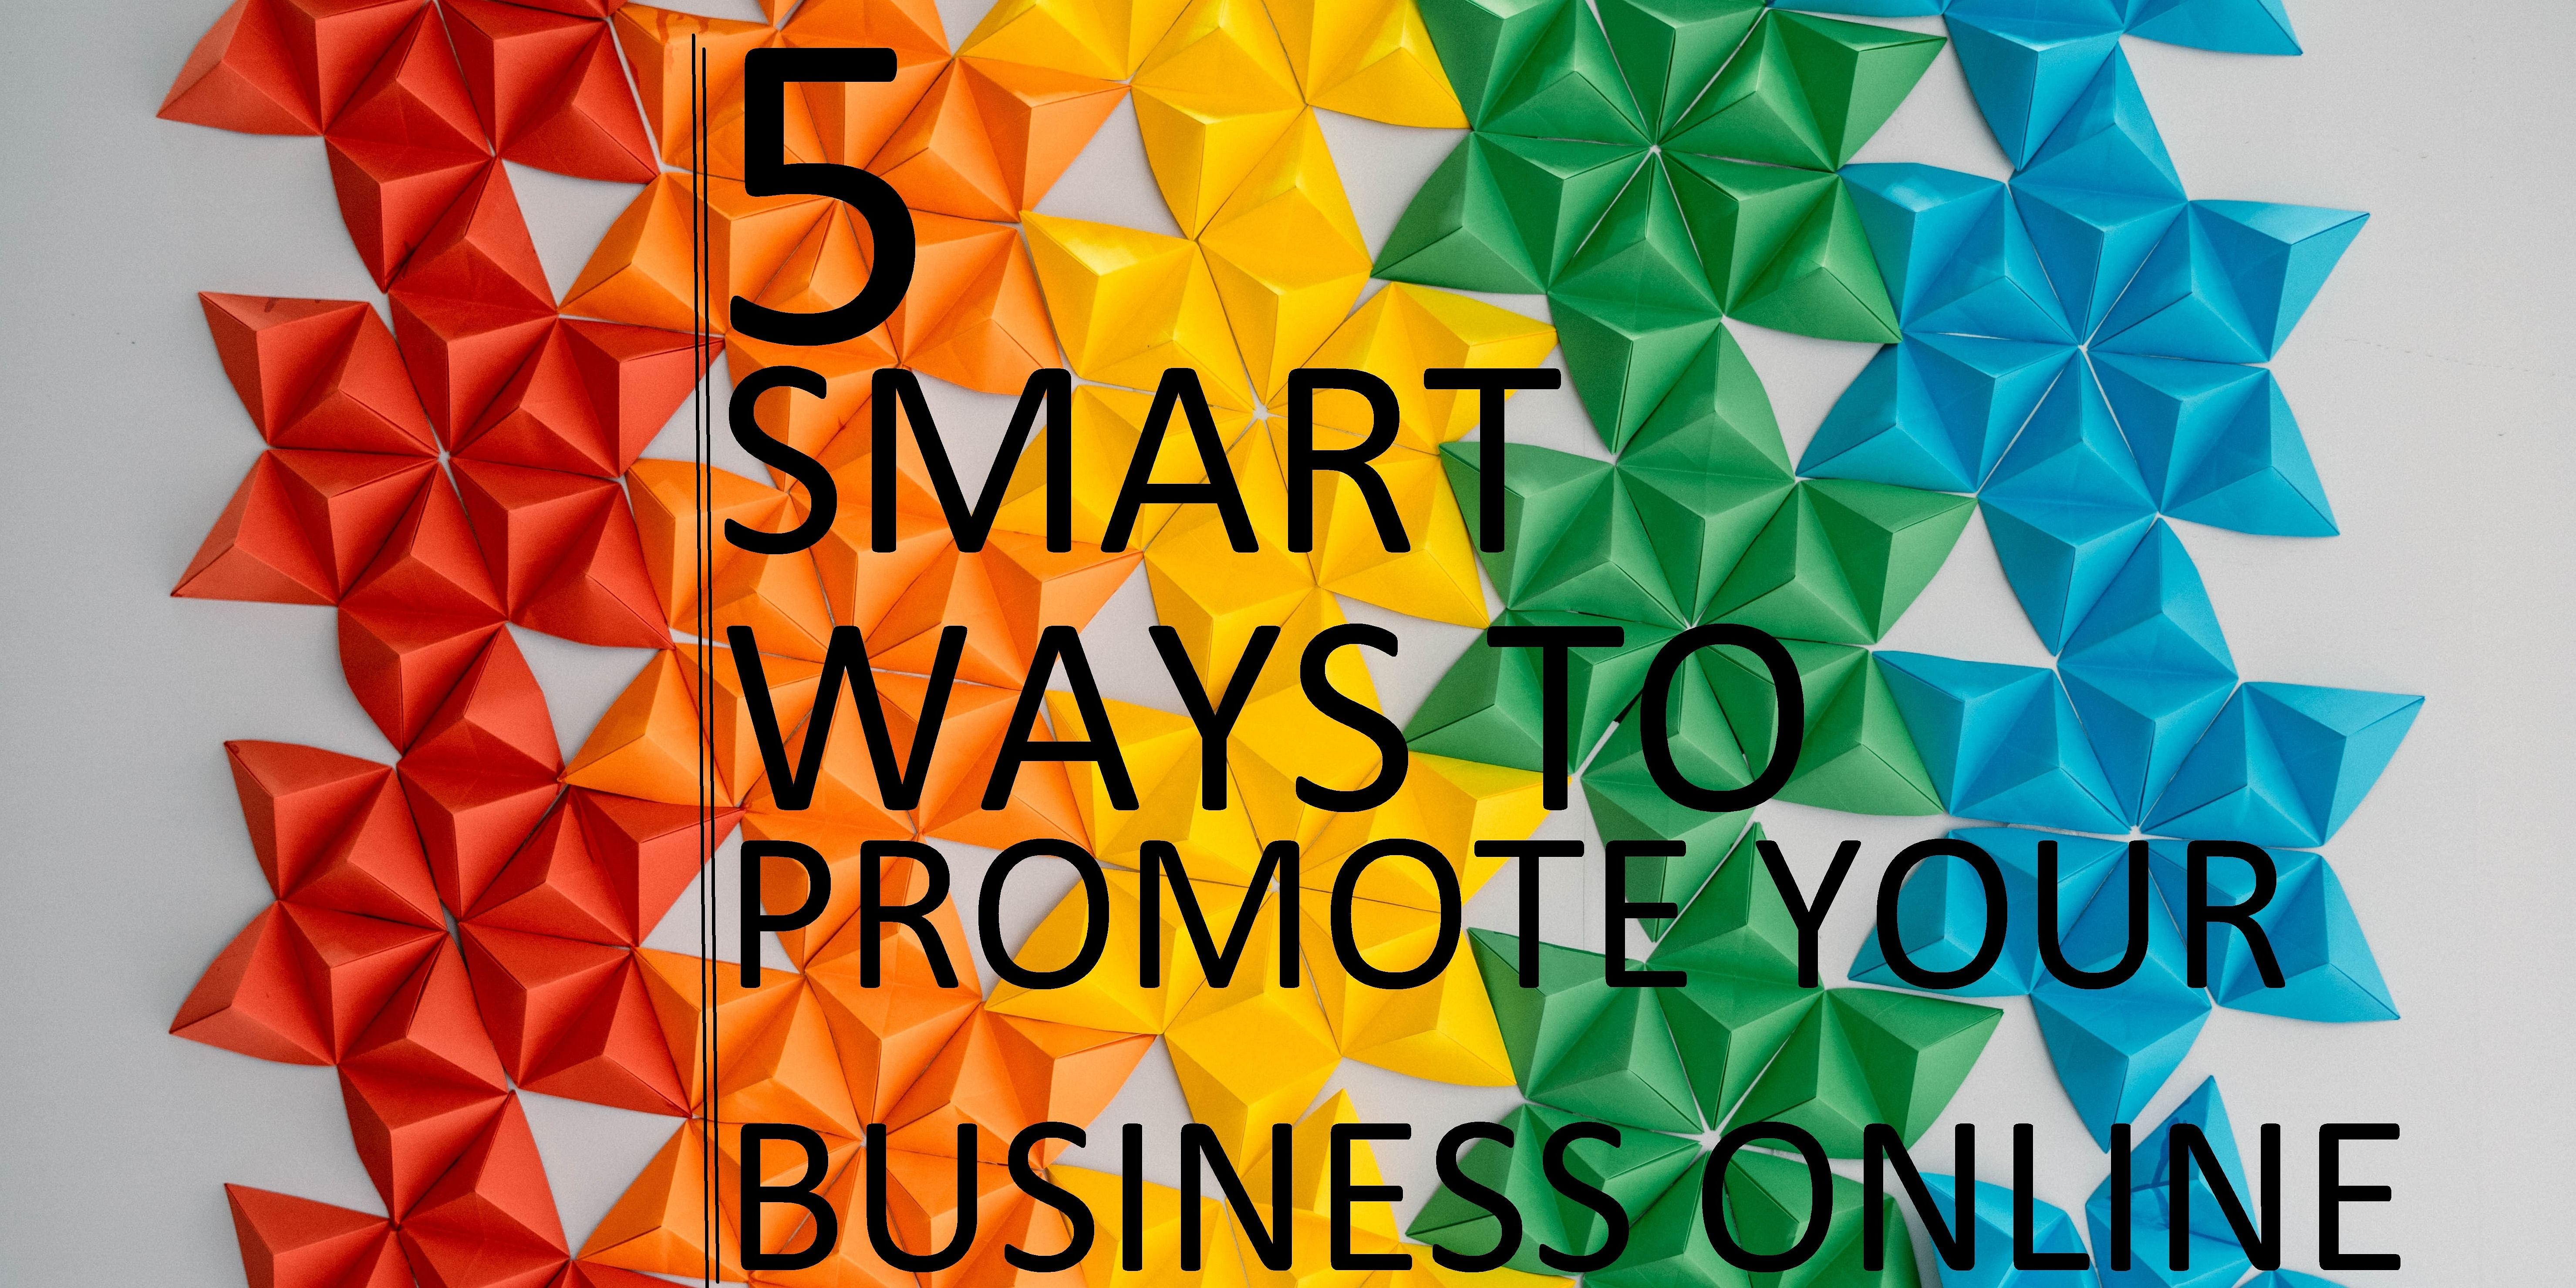 Digital Marketing is the best way to promote your business online